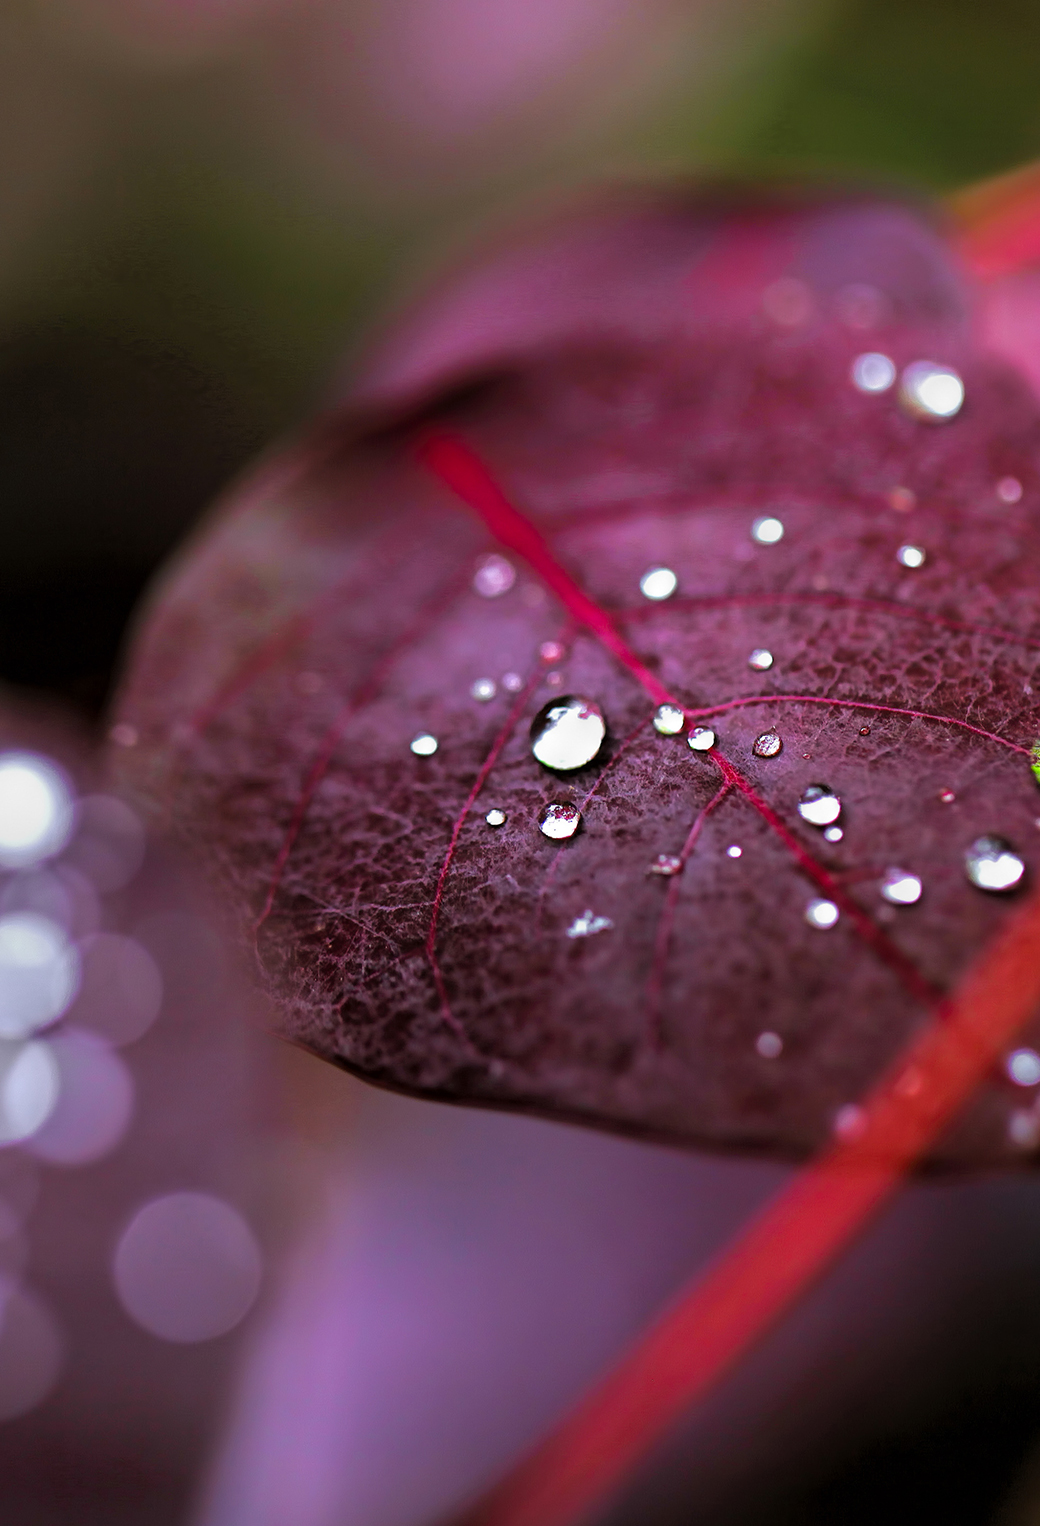 Morning Water Drops On Red Leaves 3Wallpapers iPhone Parallax Morning Water Drops On Red Leaves